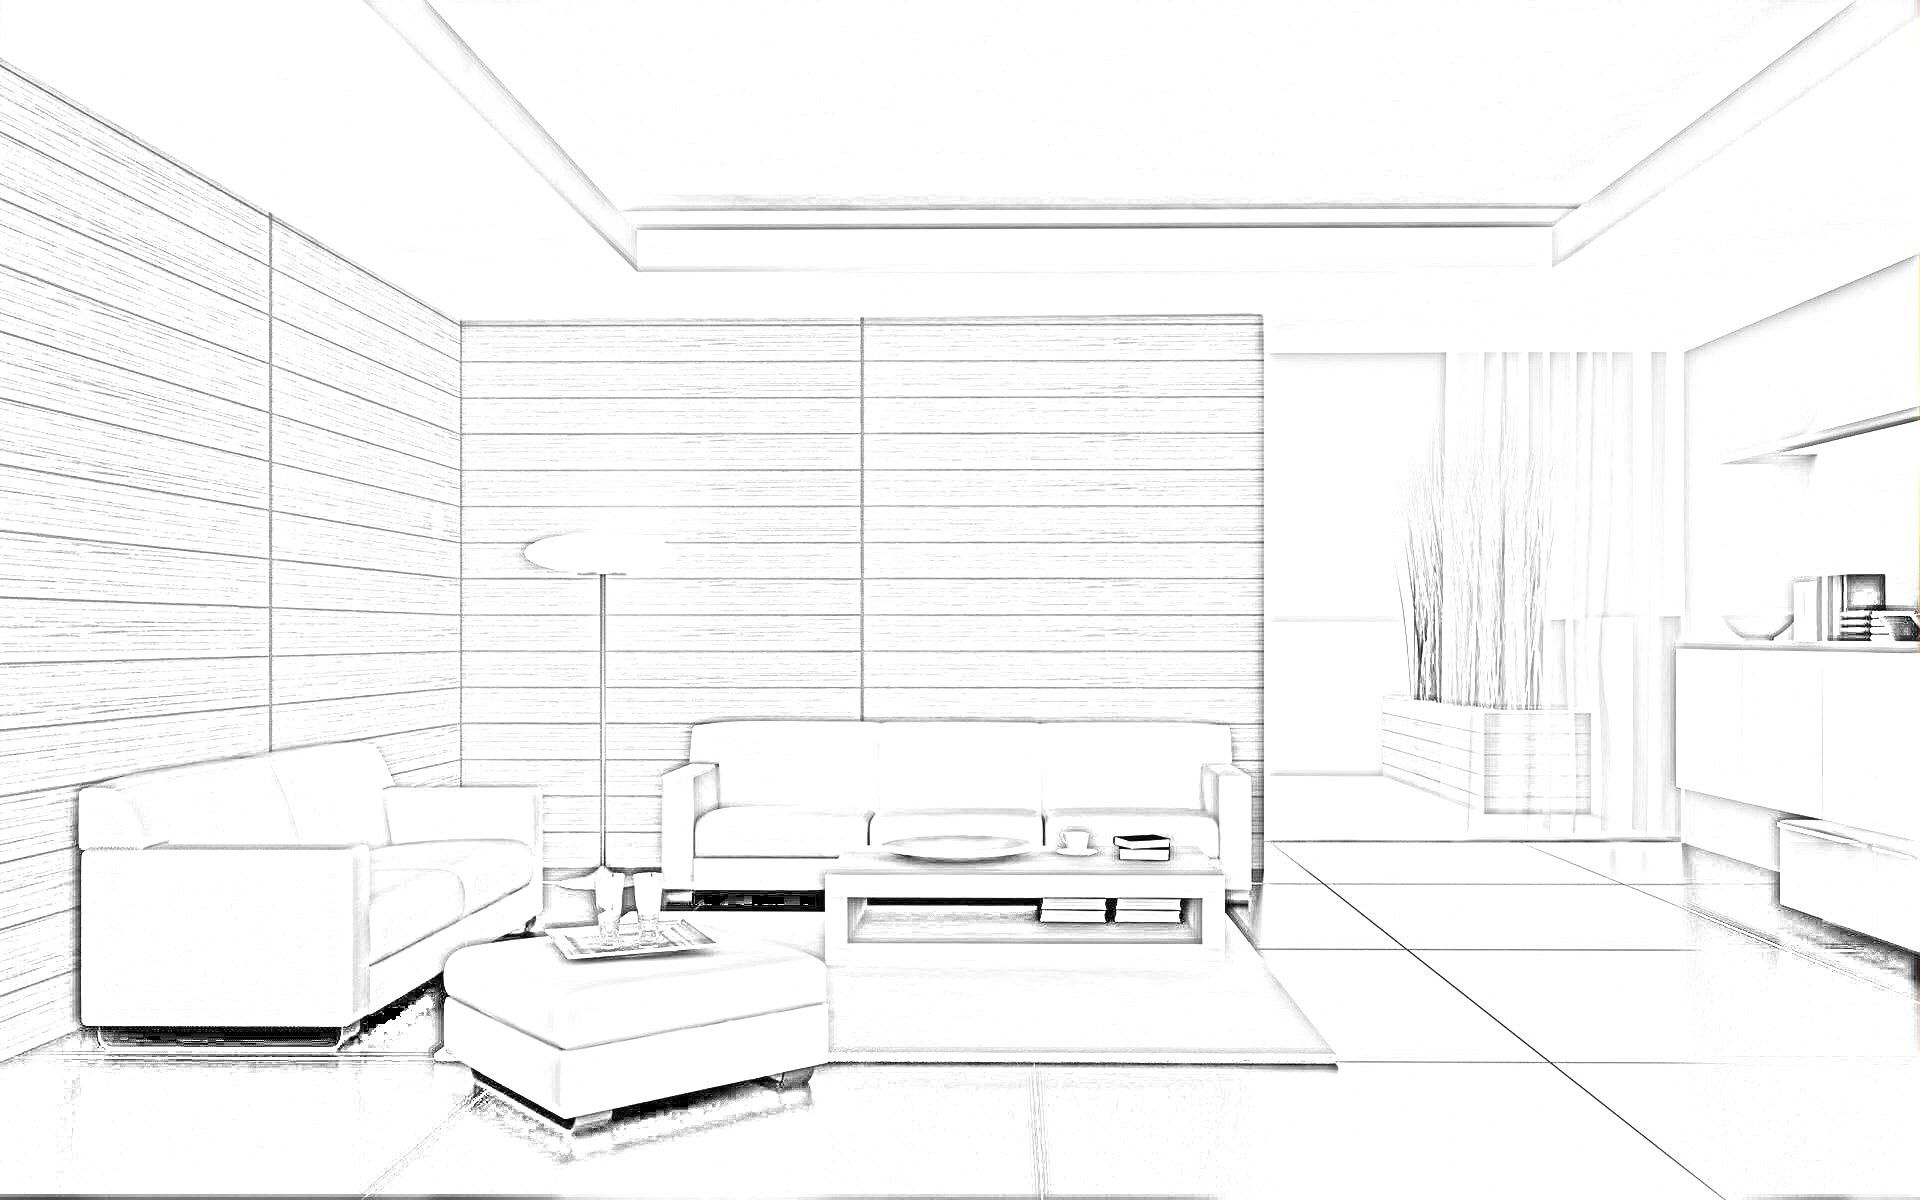 House Interior Design Sketches Fashion Interior Design Living Room Sketches Nice Apartment Living Room Design Interior Design Sketches Interior Design Drawings